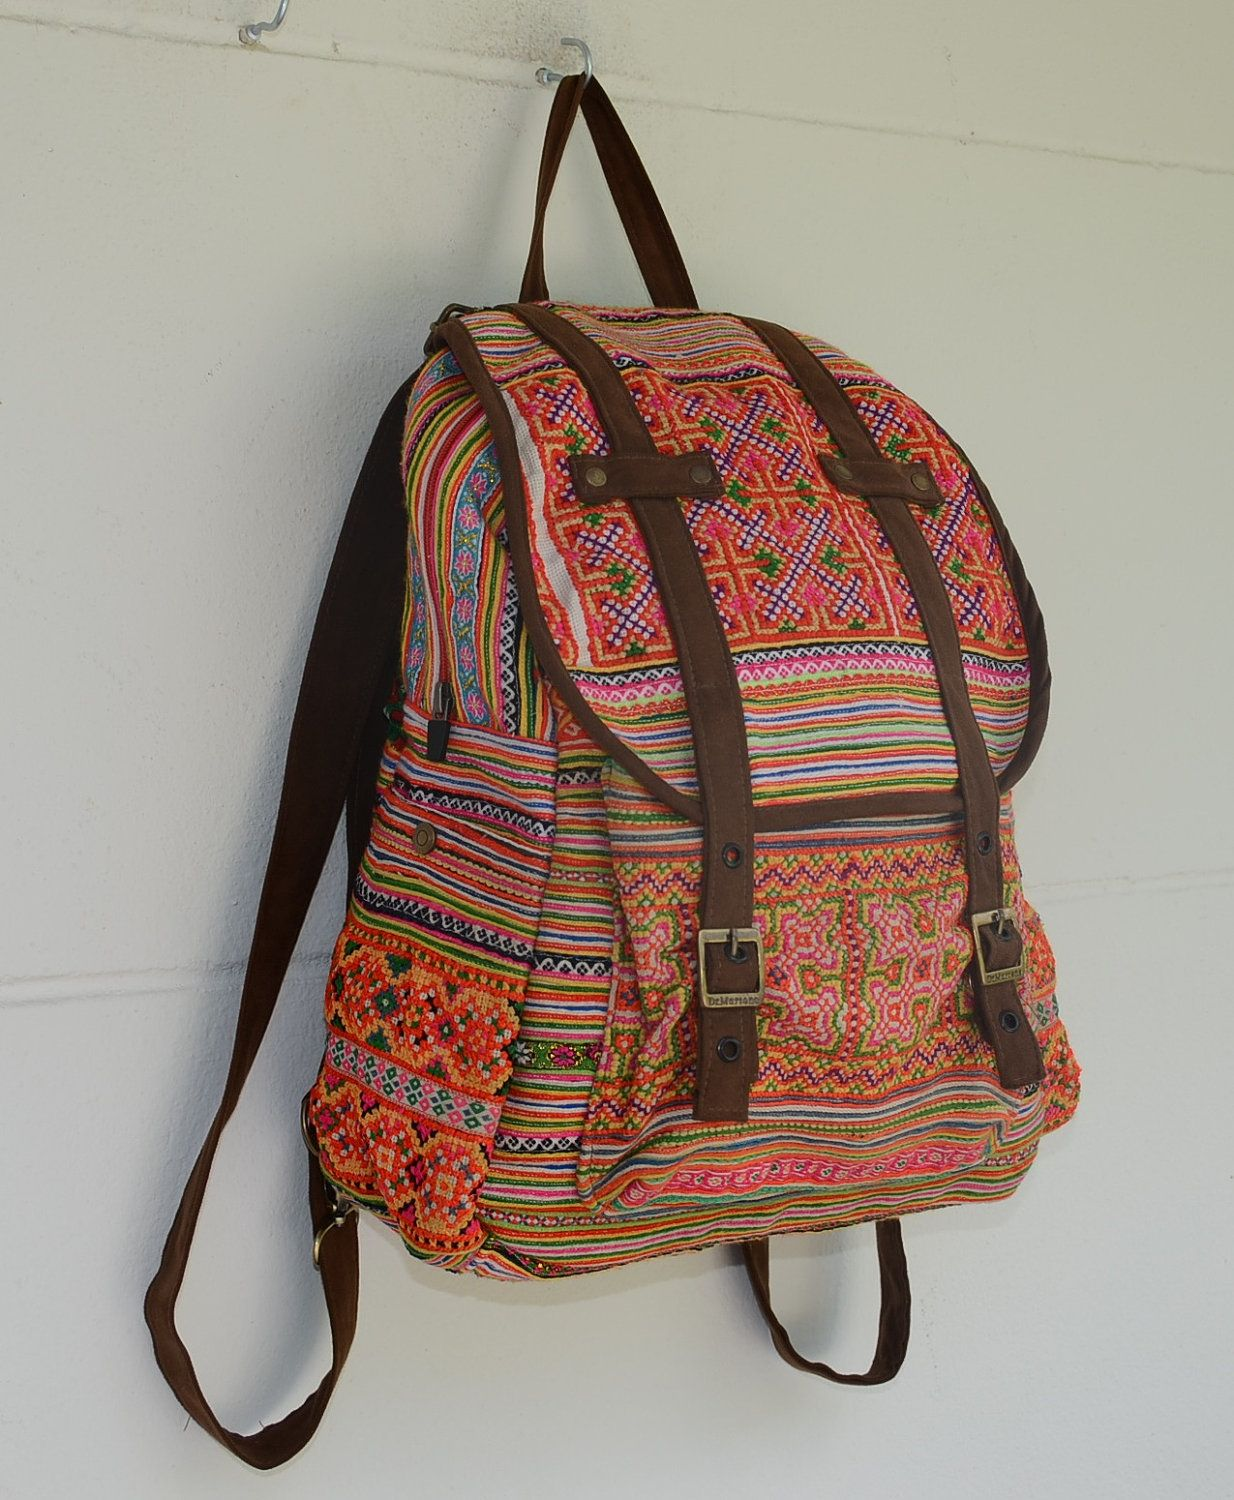 502938908ff1 Orange Backpack Book Bag Handmade HMONG Vintage Fabric Fair Trade Thailand  (bg510).  39.99